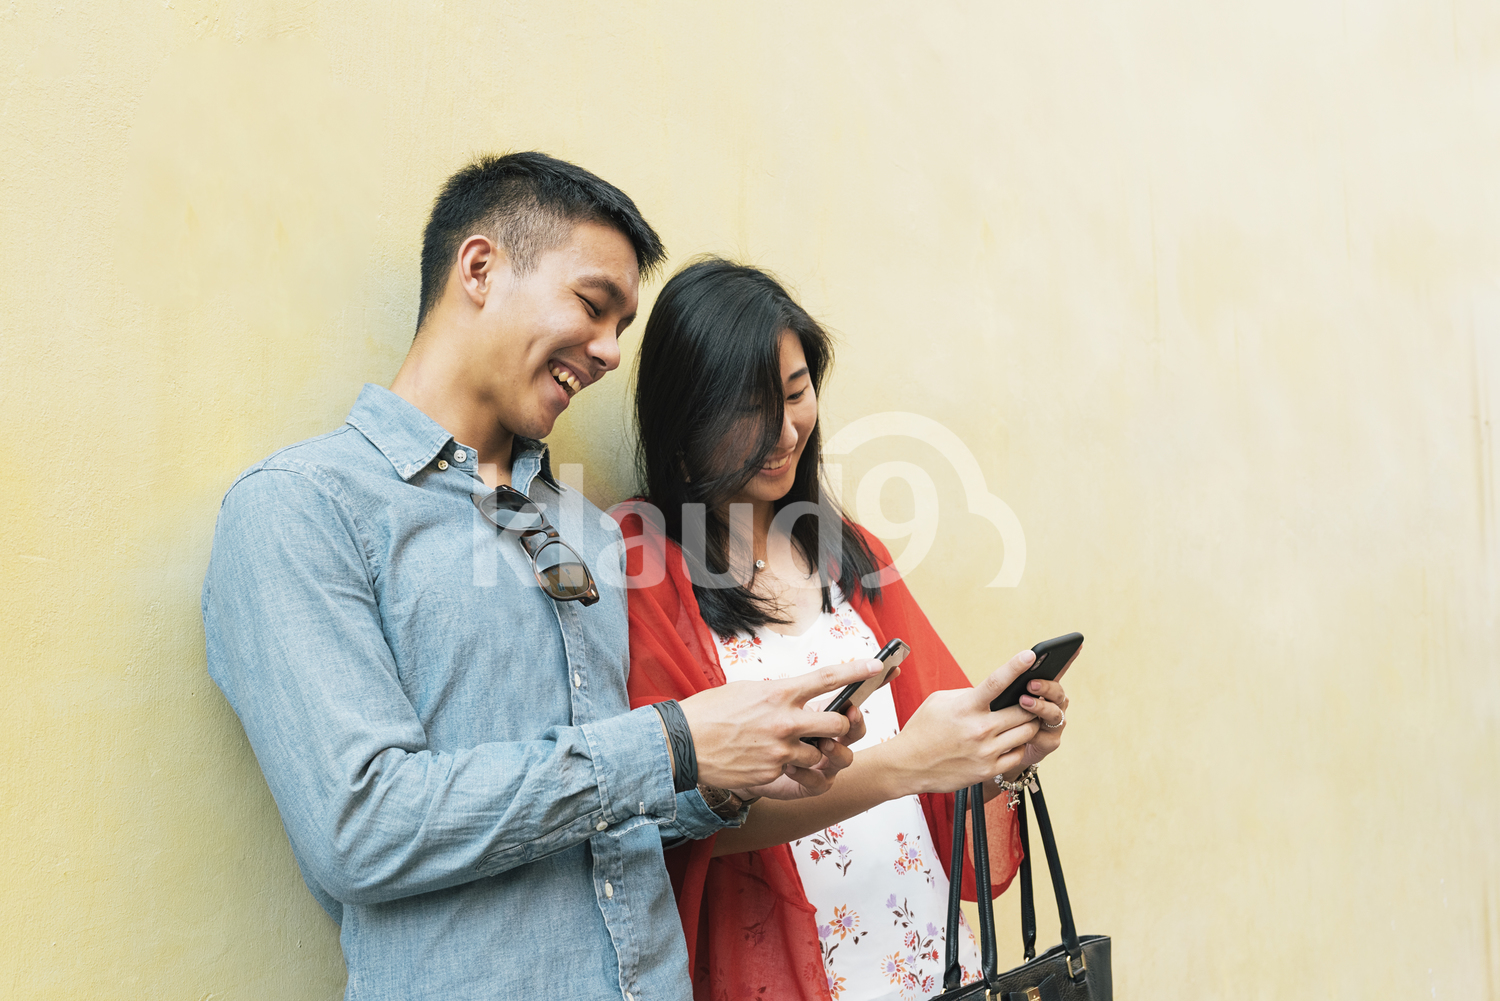 Chinese couple reading text messages on their smartphone